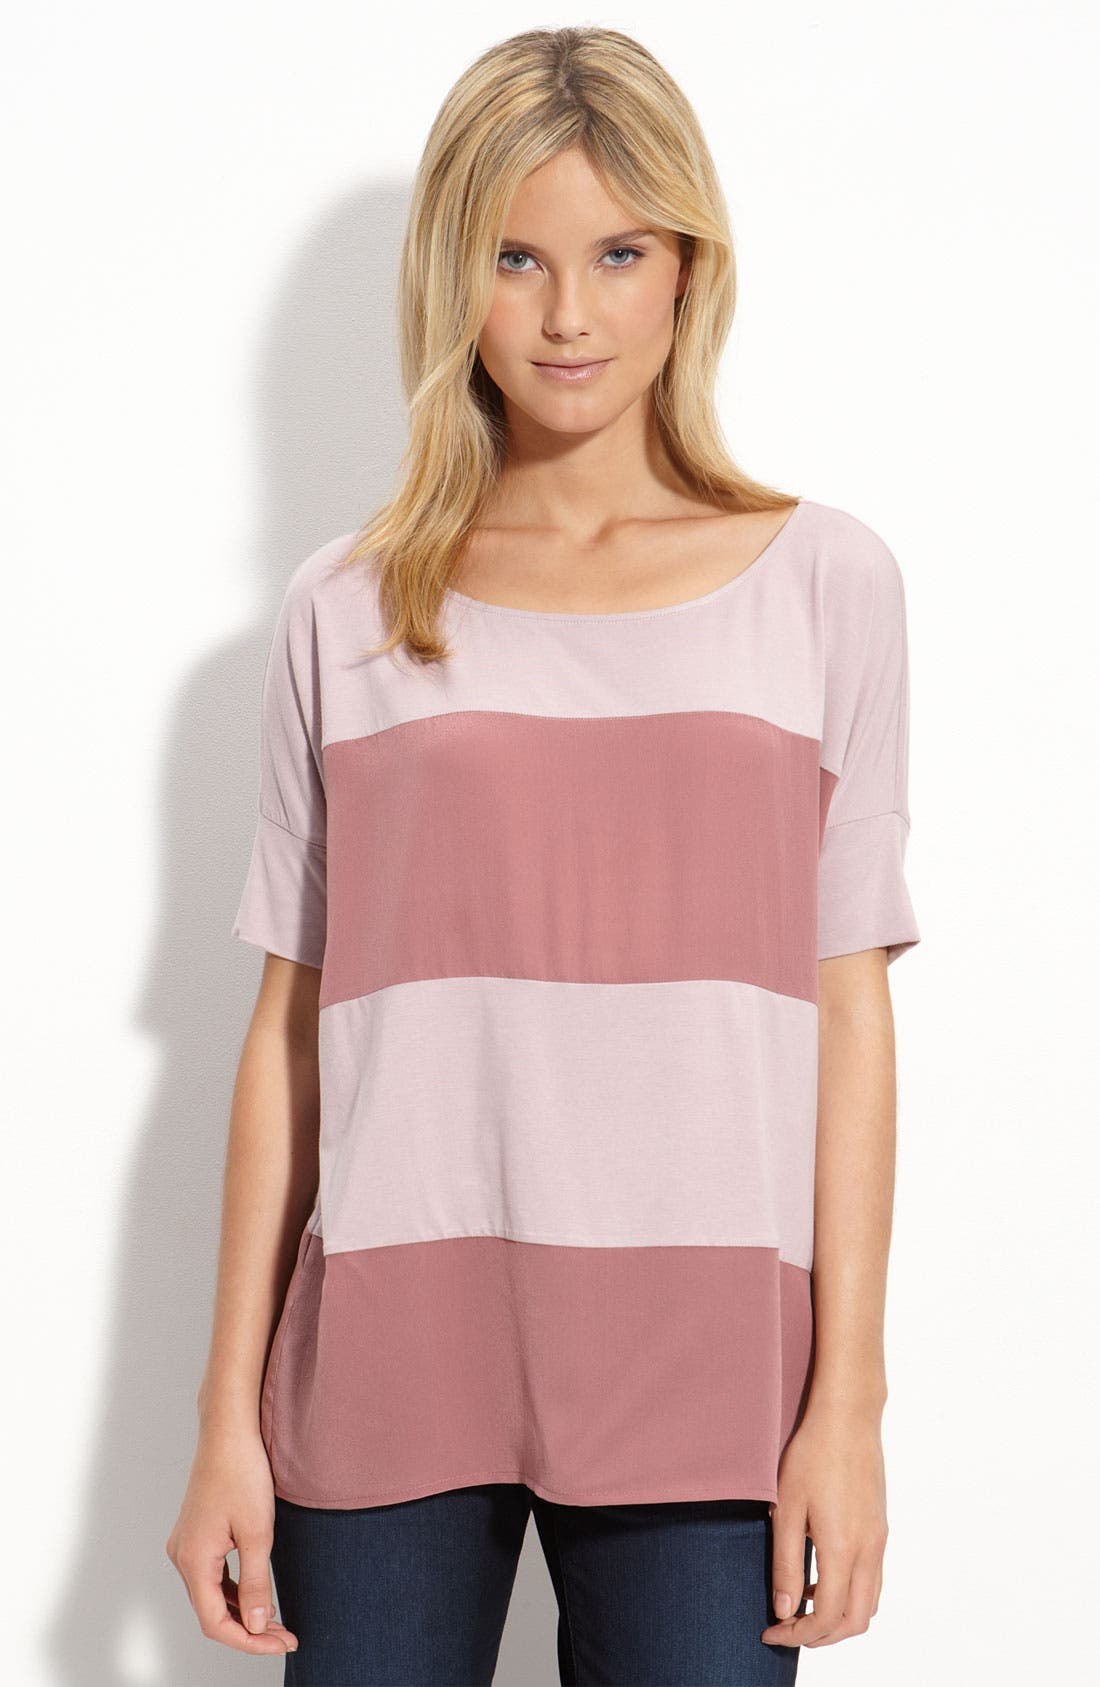 BEHOLIC, Colorblock Stripe Top, Main thumbnail 1, color, 452